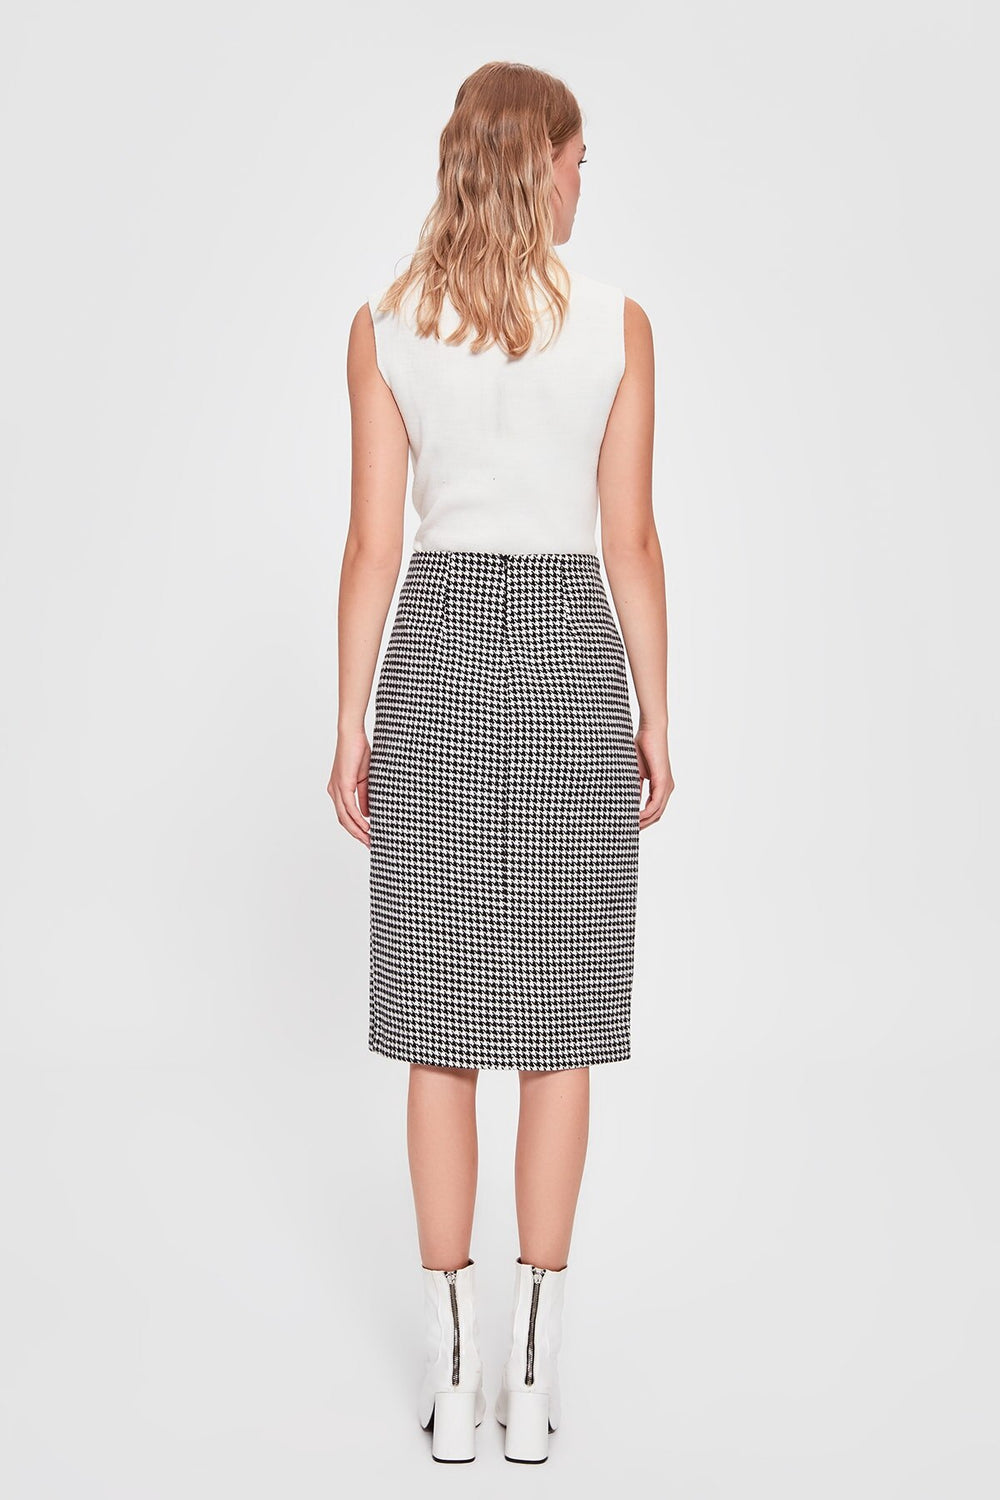 Miss Zut Miss Zut Patterned Skirt Miss Zut &CO